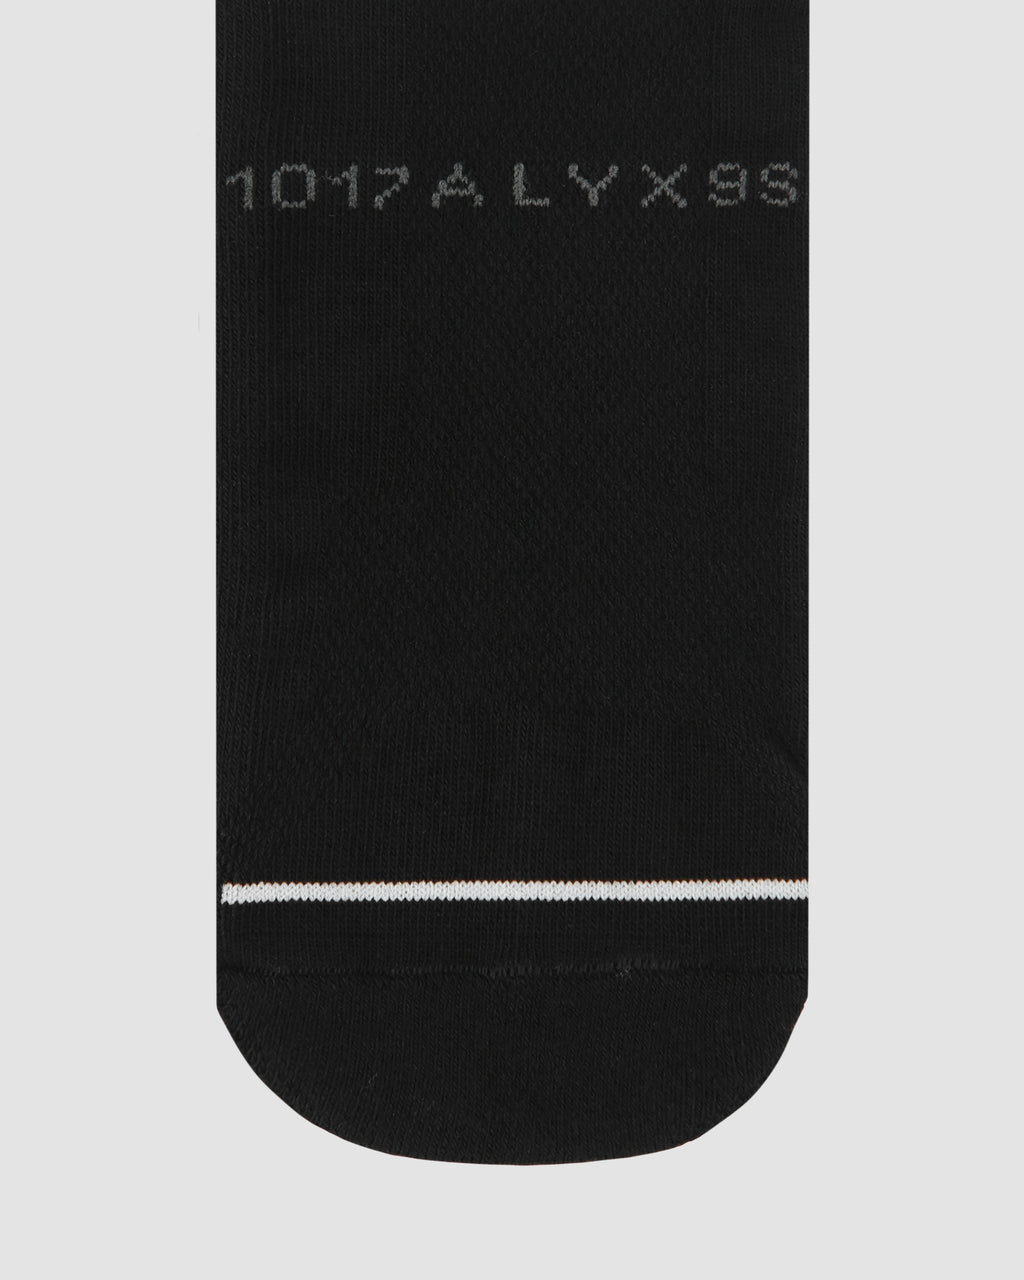 1017 ALYX 9SM | SPORT SOCKS | Sock | Accessories, BLACK, Google Shopping, Man, S20, S20EXSH, Socks, UNISEX, Woman